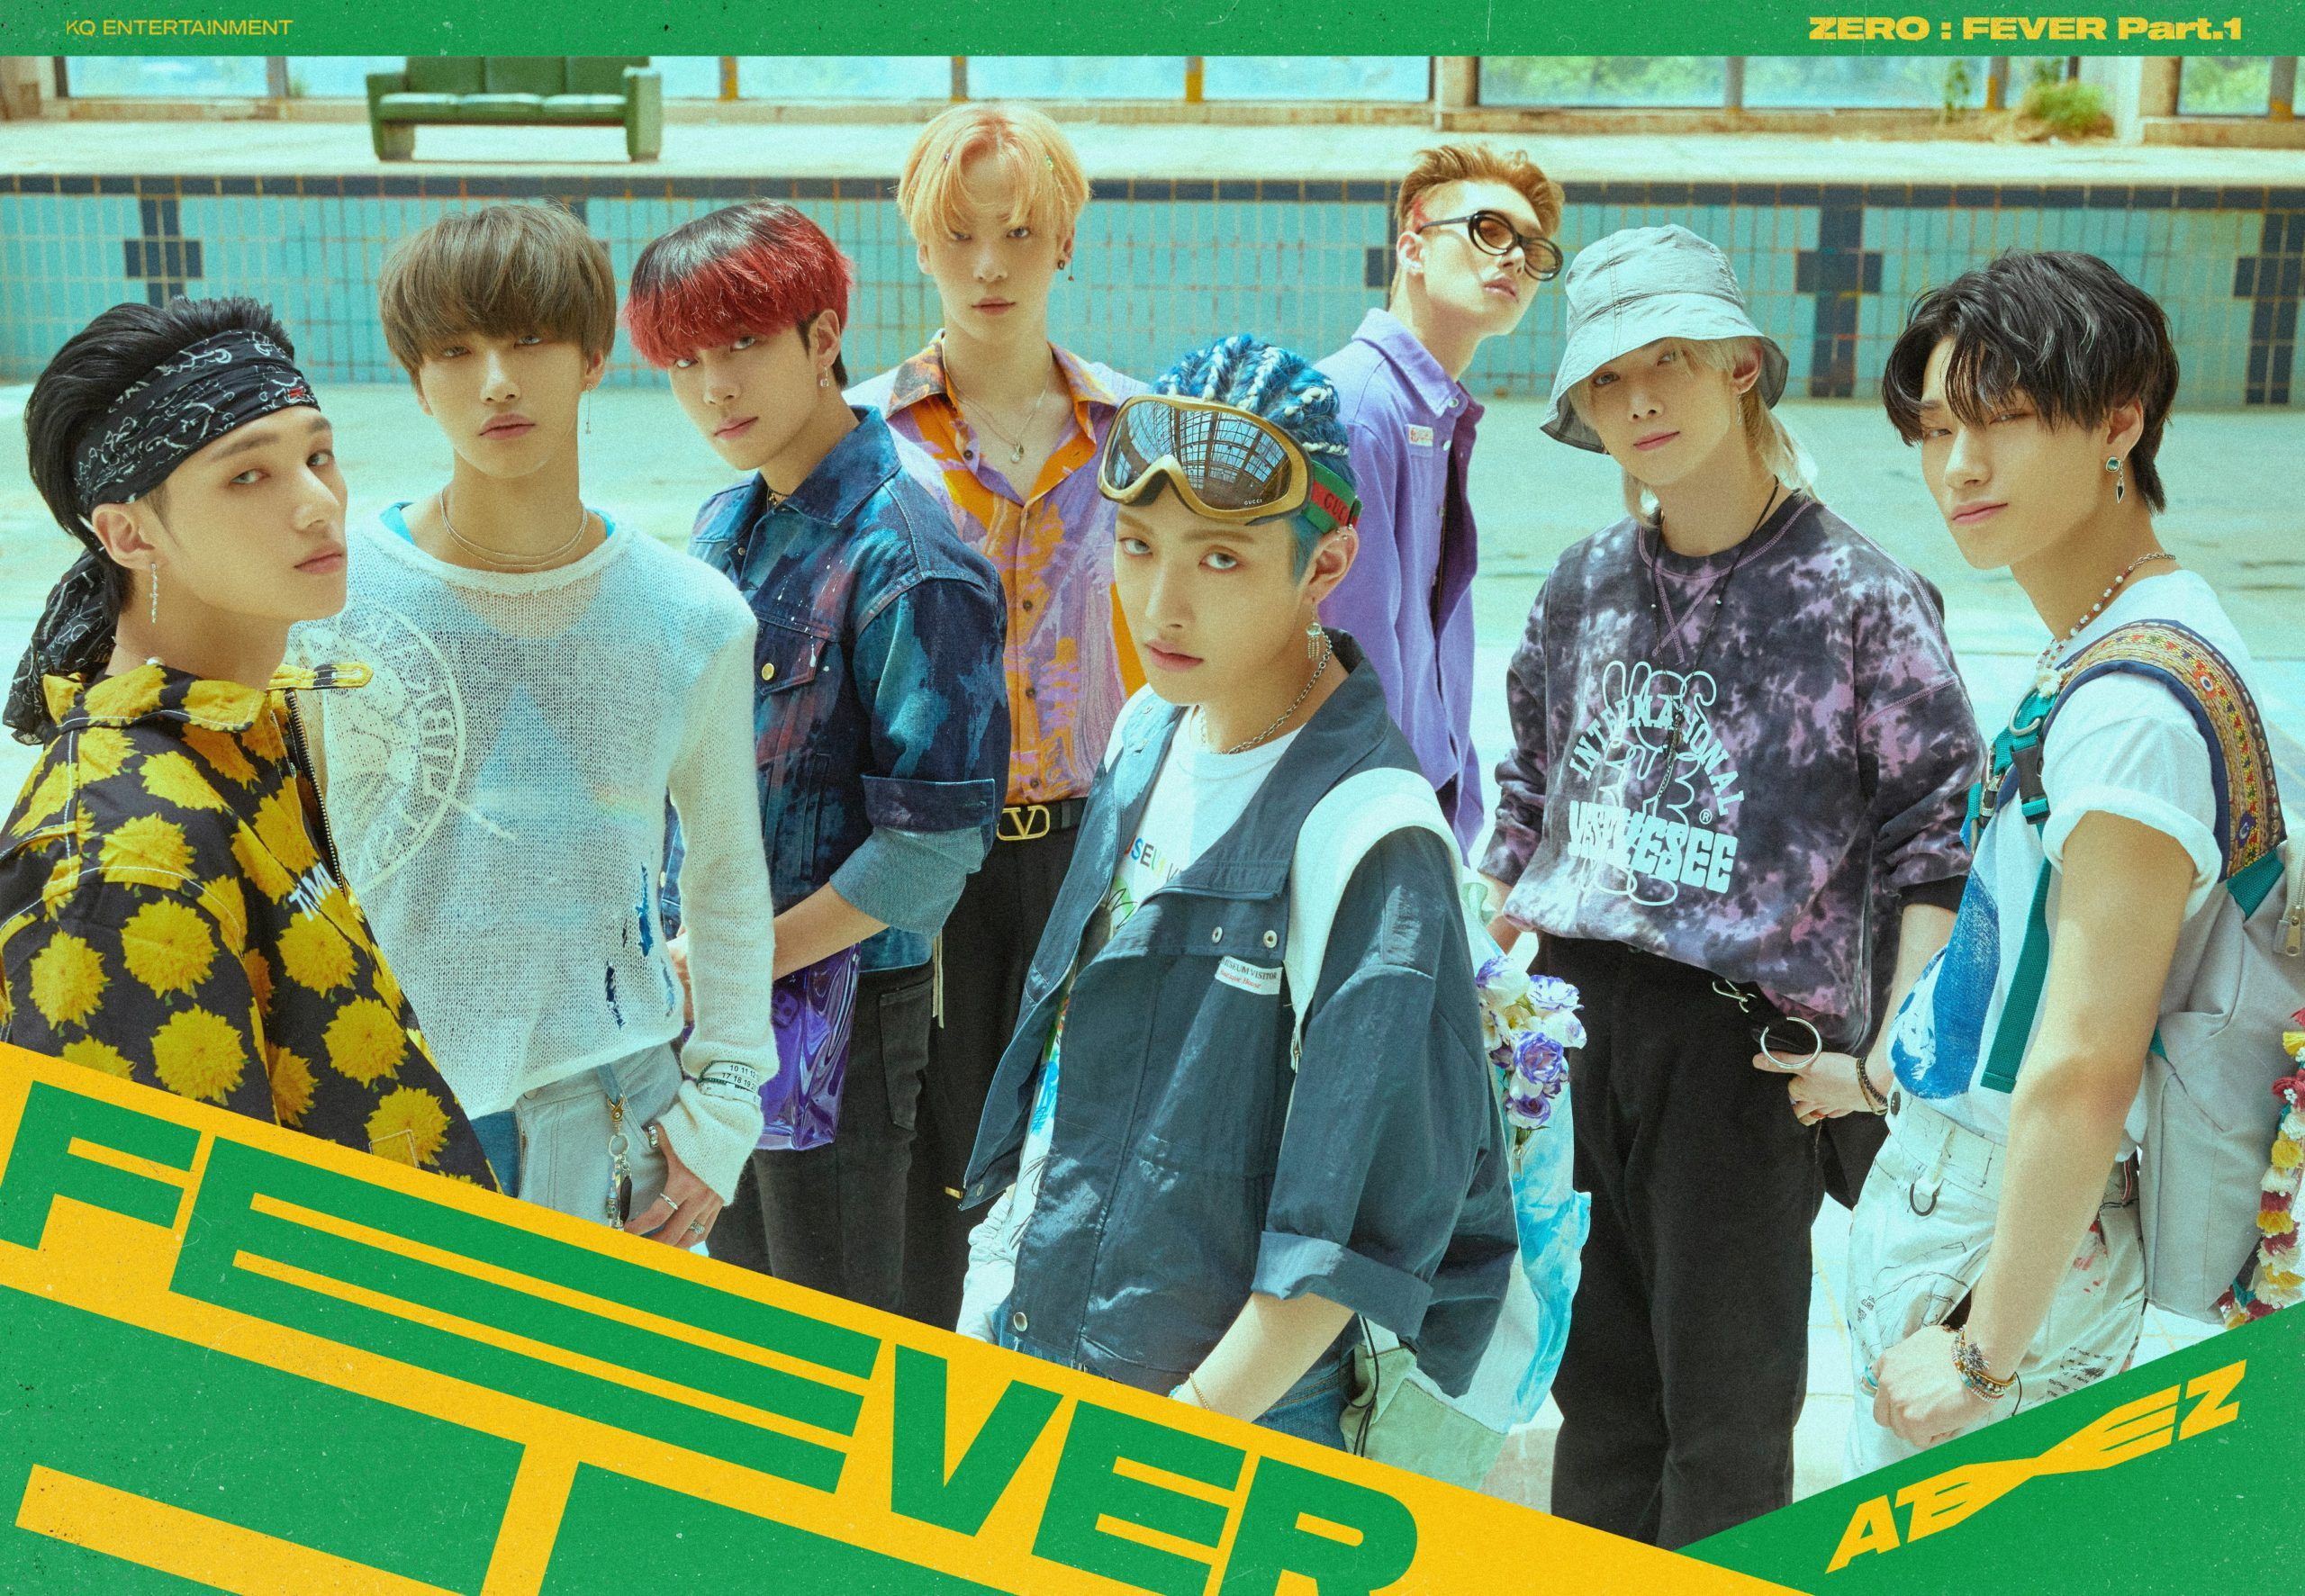 Album Review] Zero: Fever Part 1 (5th Mini Album) – ATEEZ – KPOPREVIEWED